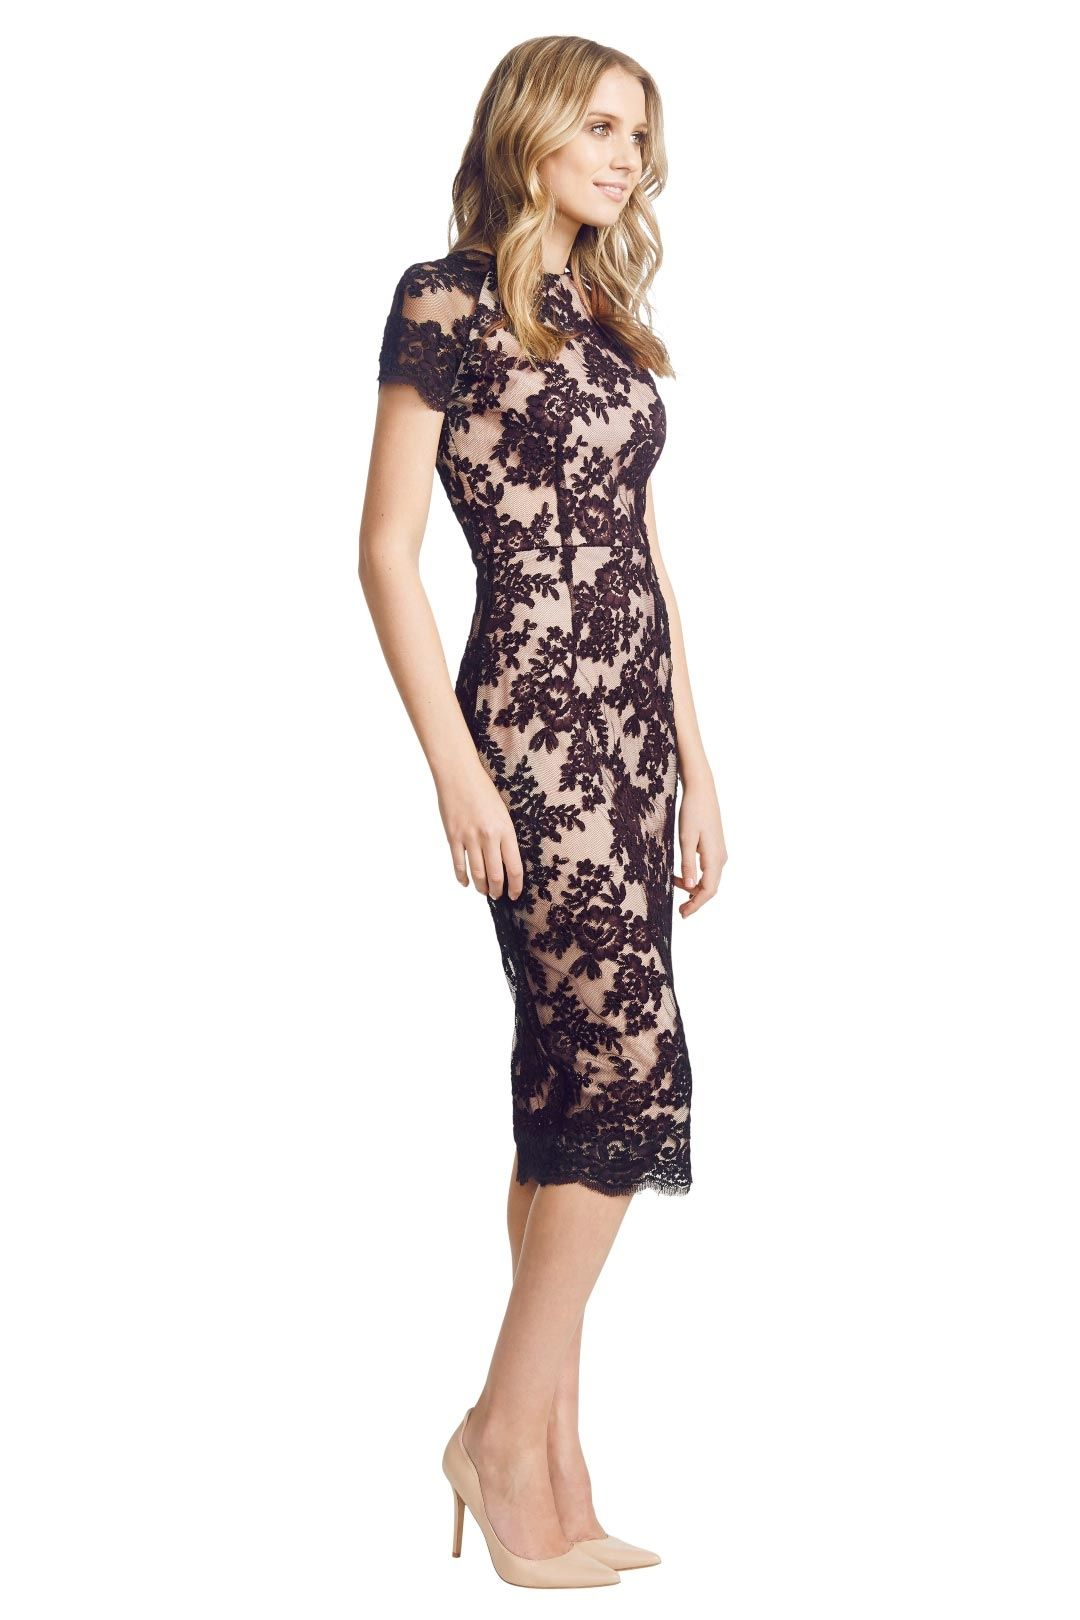 Alex Perry - Francoise Dress - Black - Side